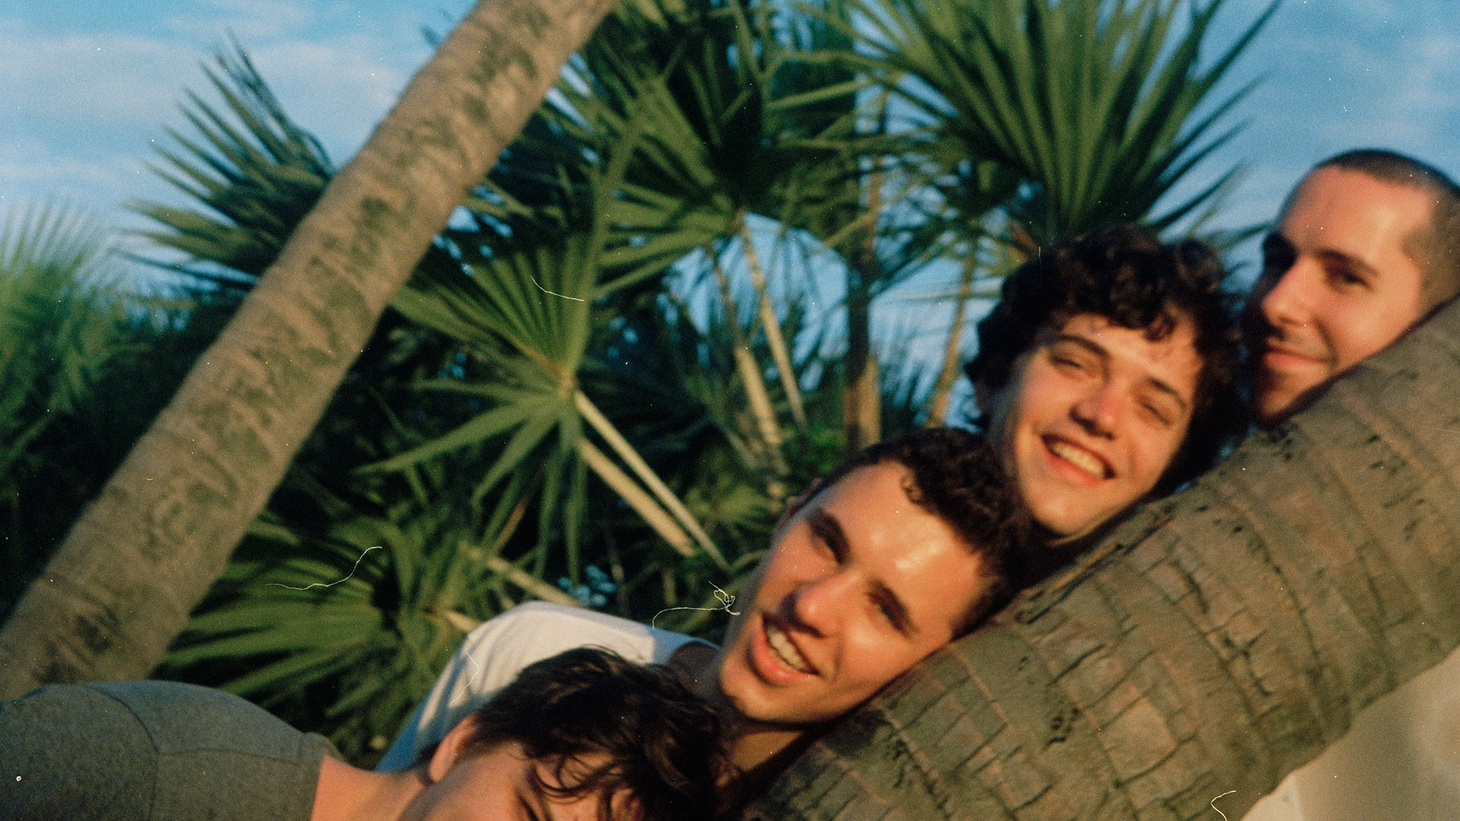 Toronto-bred jazz foursome BADBADNOTGOOD revel in a variety of musical genres mostly performed as instrumentals.